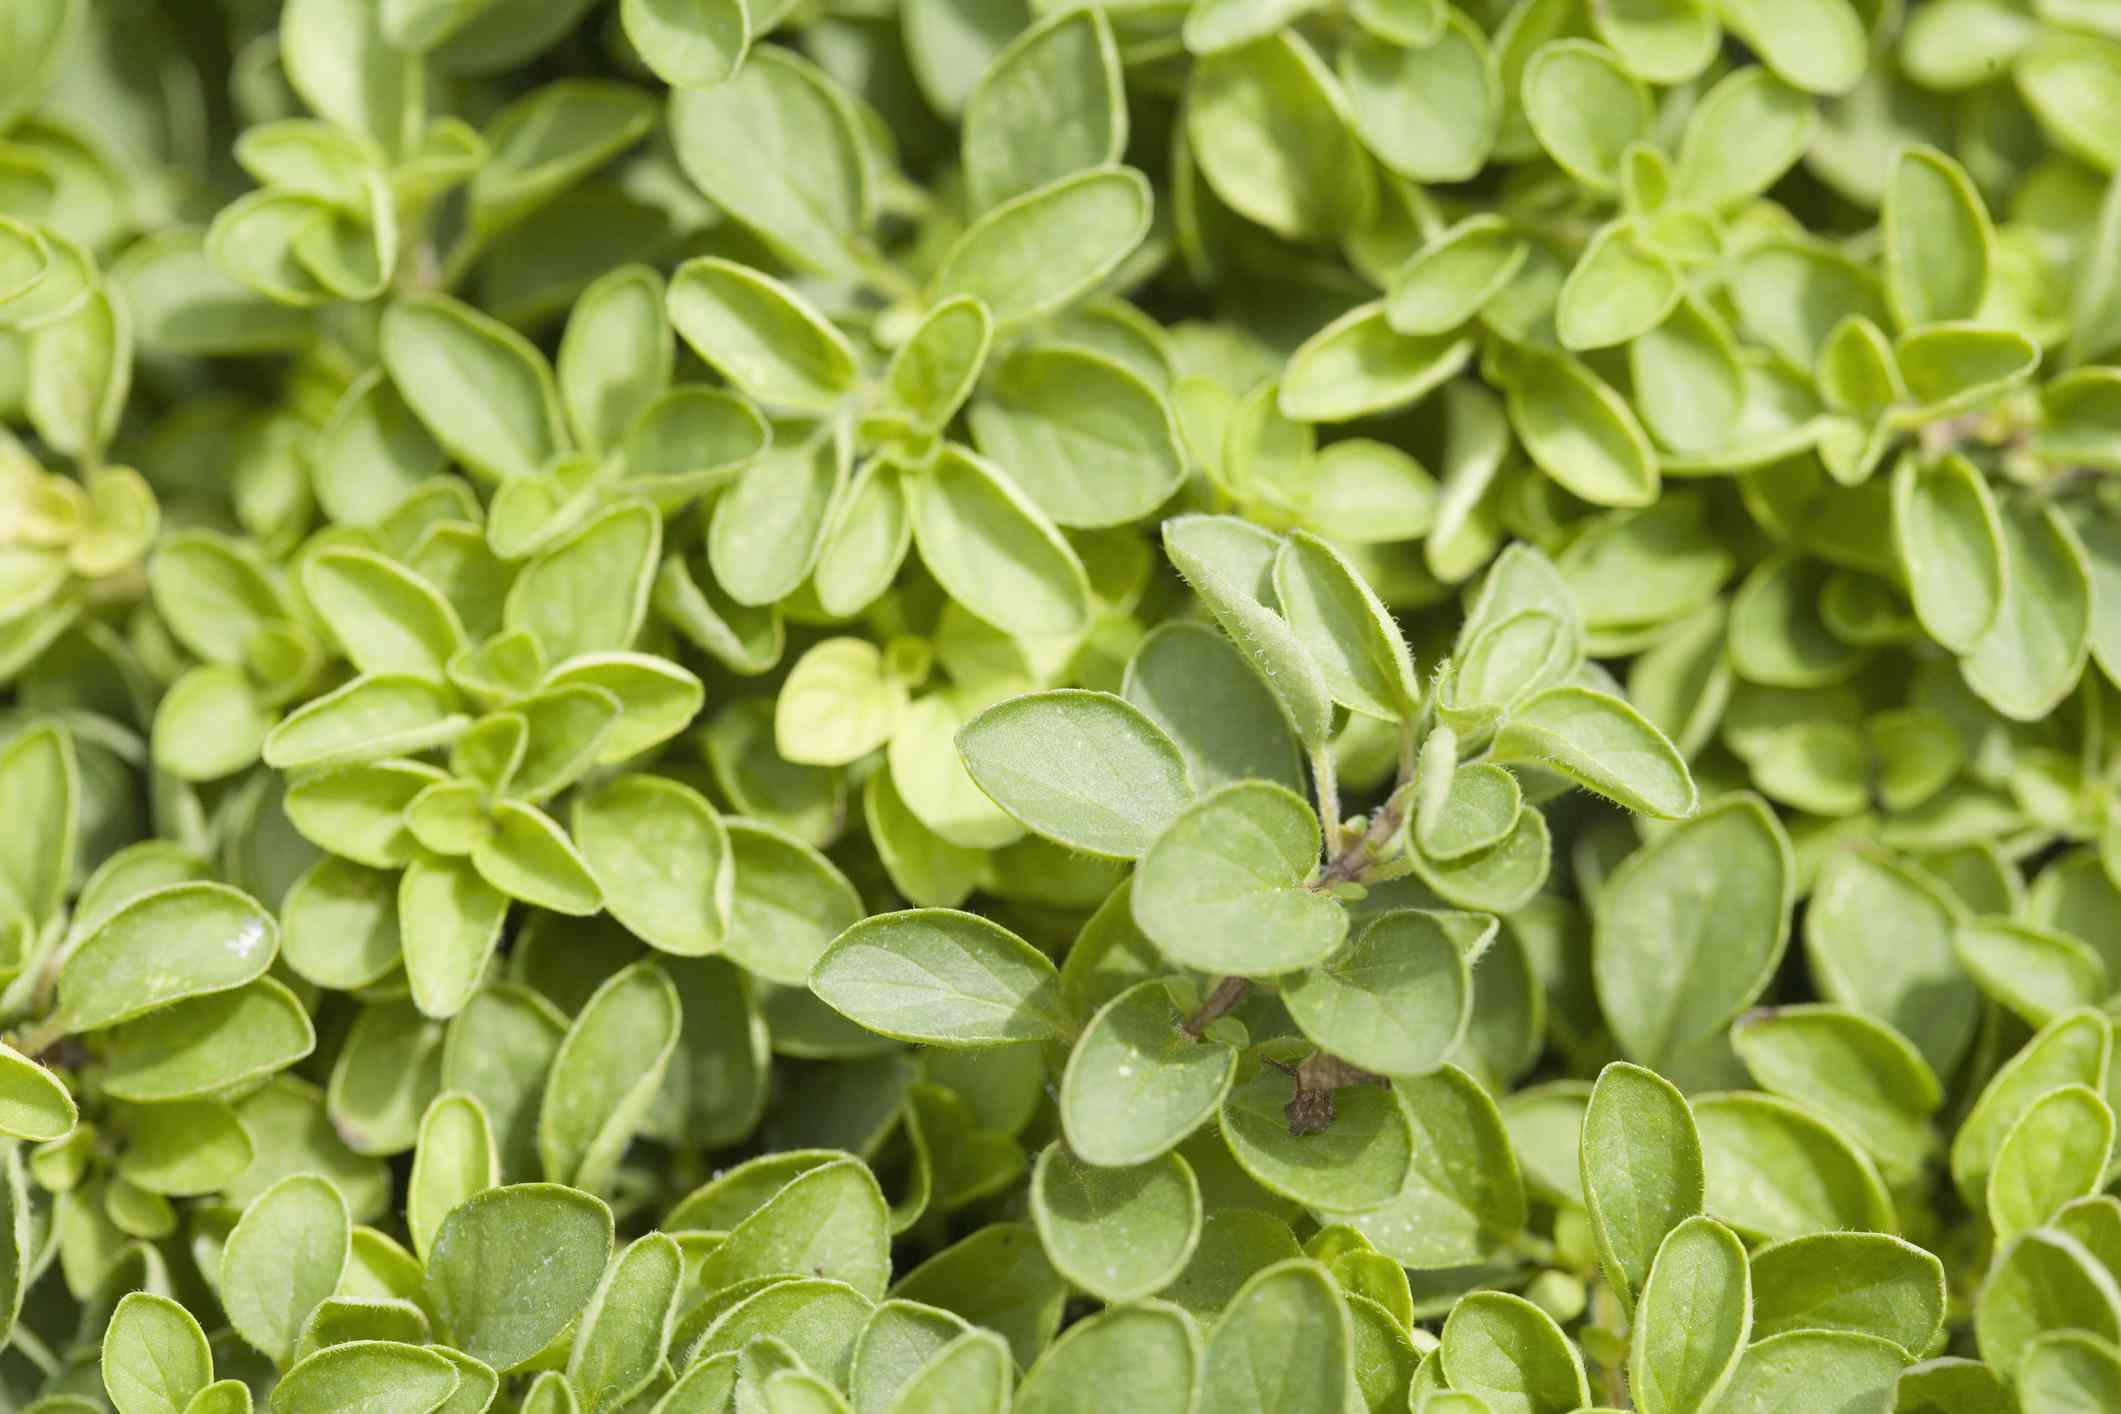 A patch of oregano plants growing closely together.